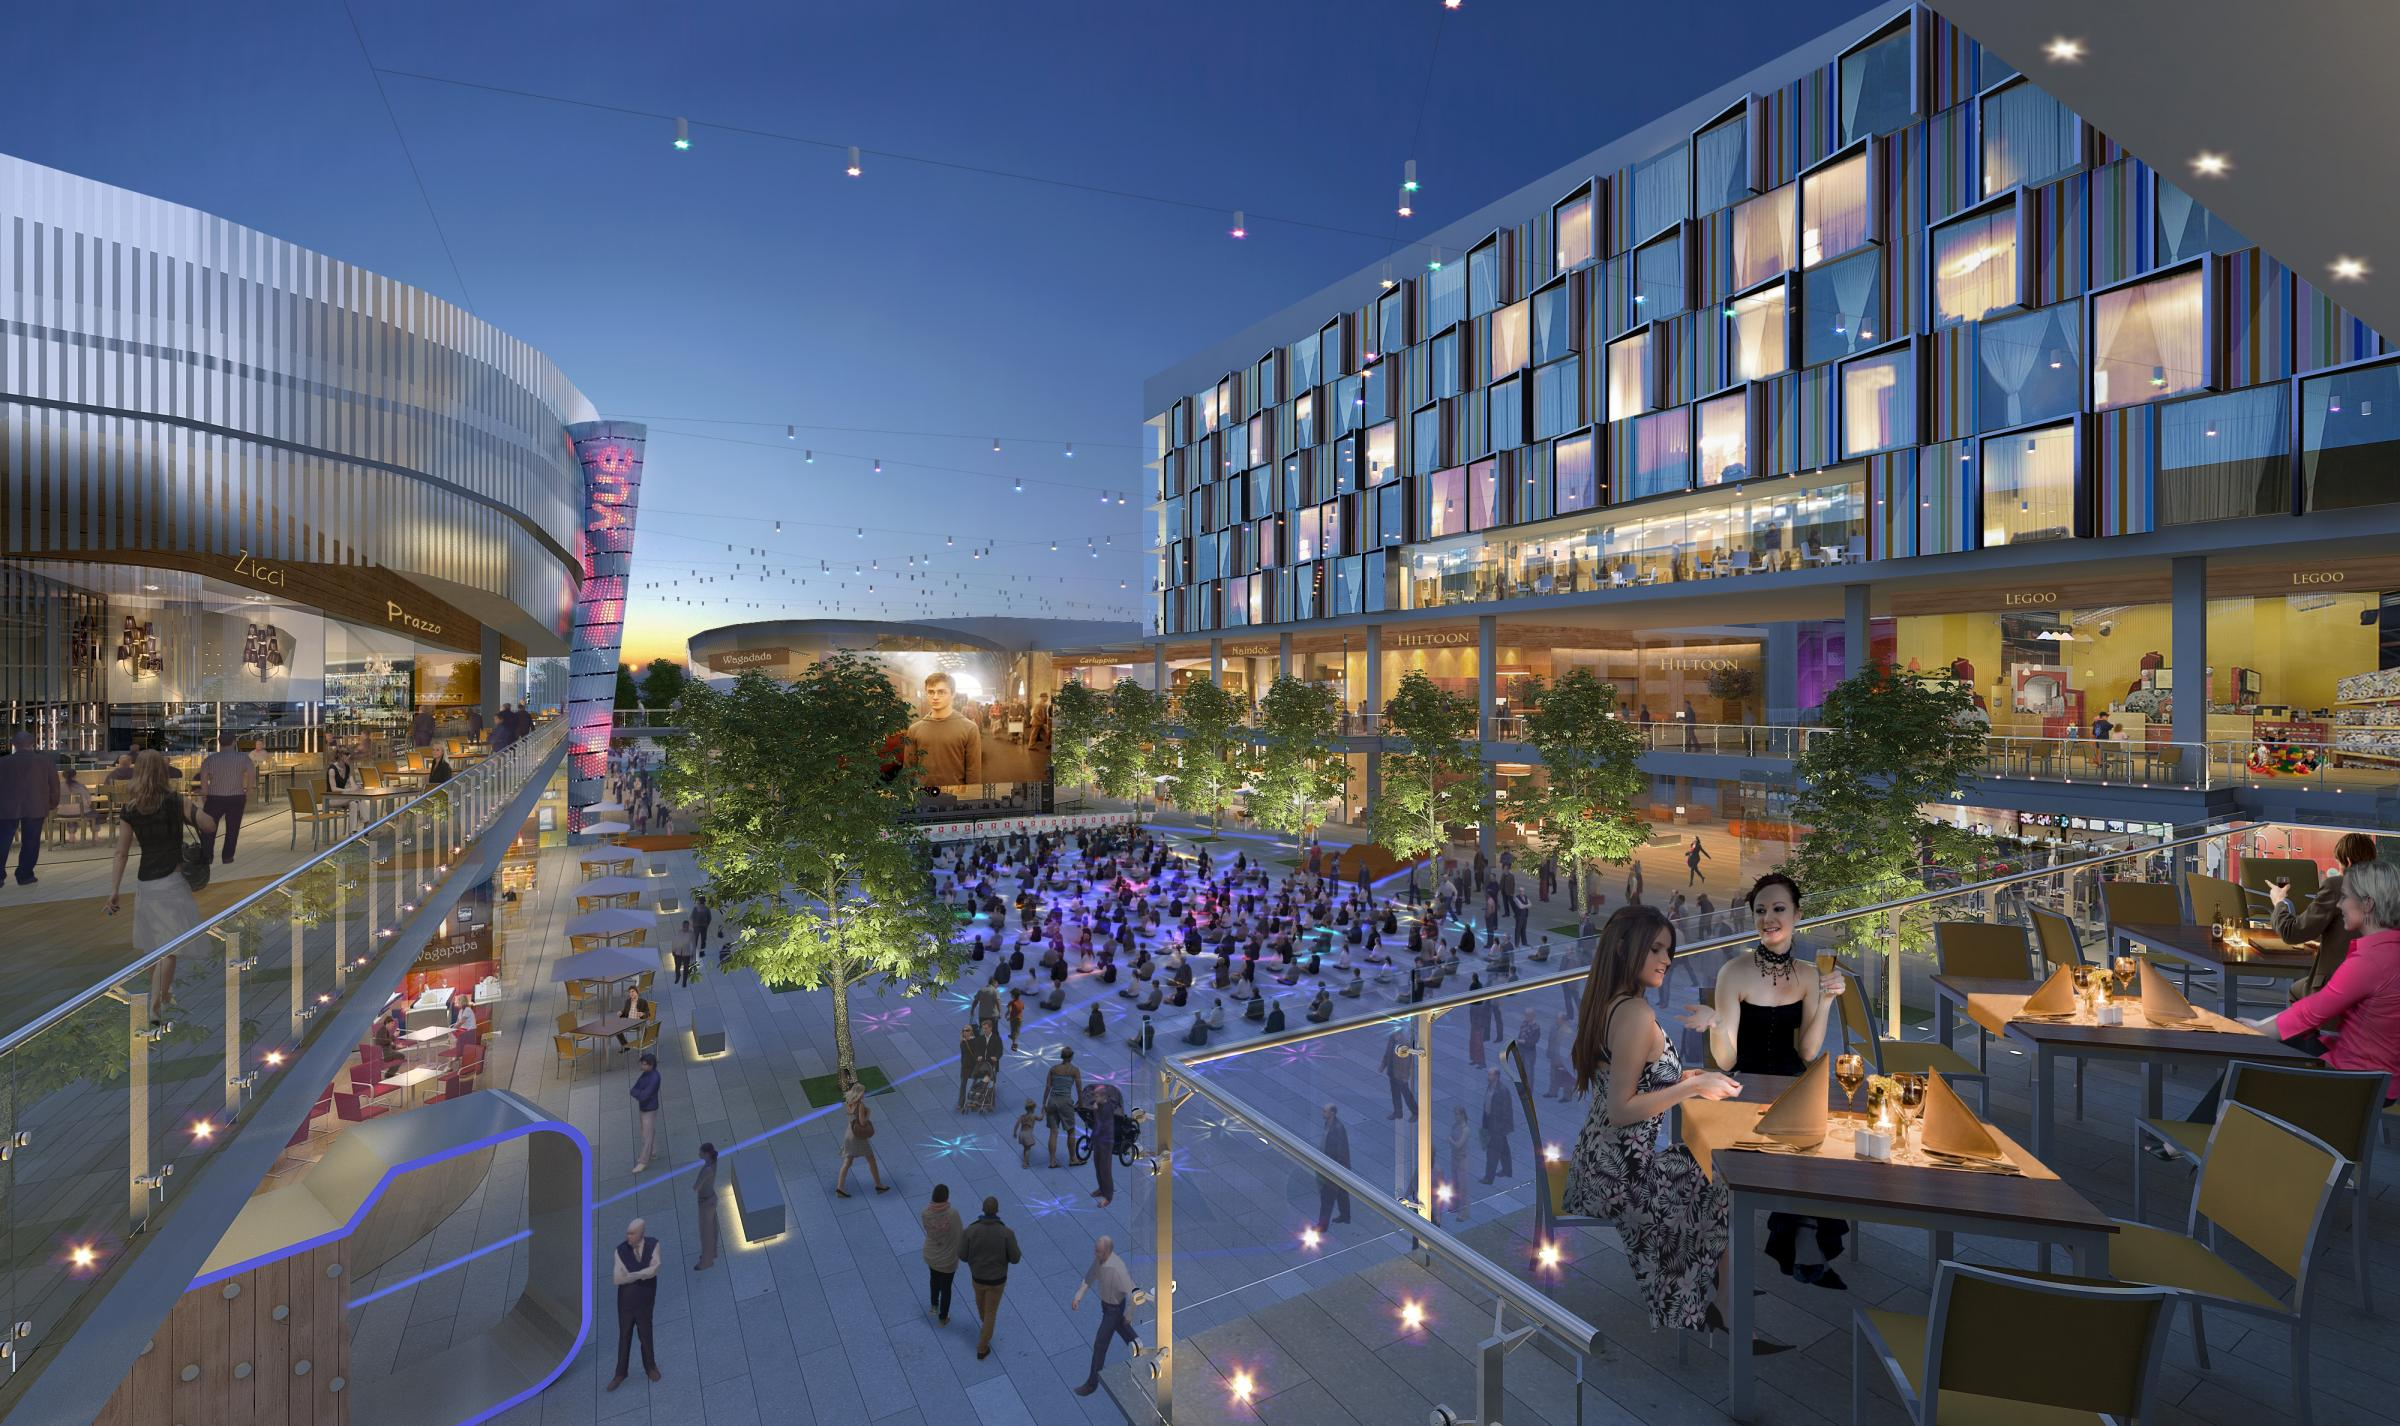 Artist's impression: exciting leisure proposal for Lakeside shopping centre